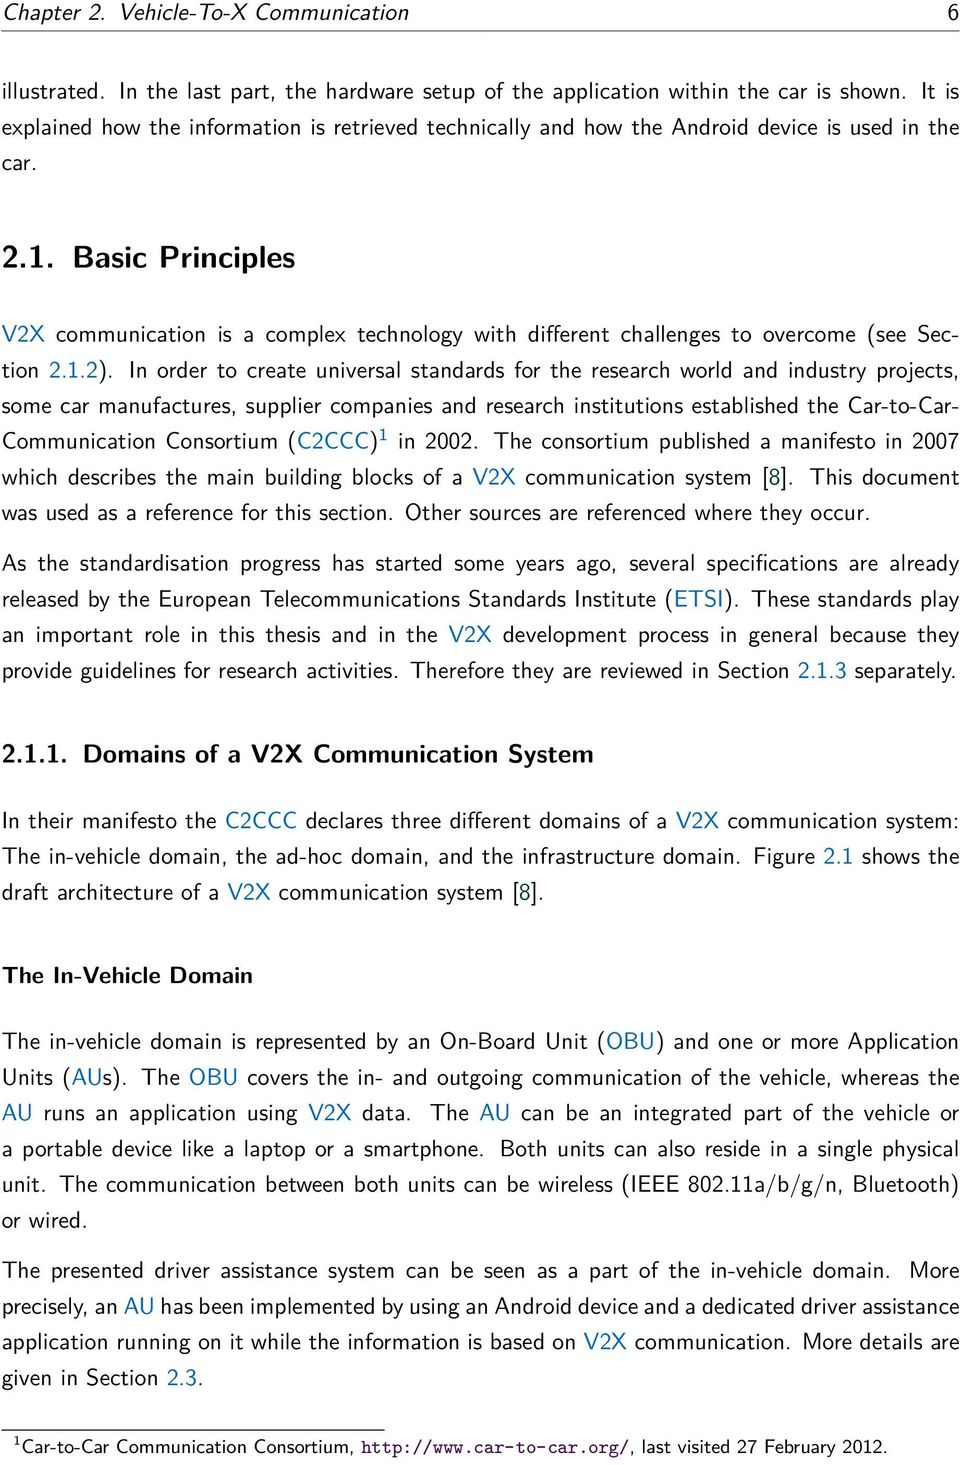 Basic Principles V2X communication is a complex technology with different challenges to overcome (see Section 2.1.2).